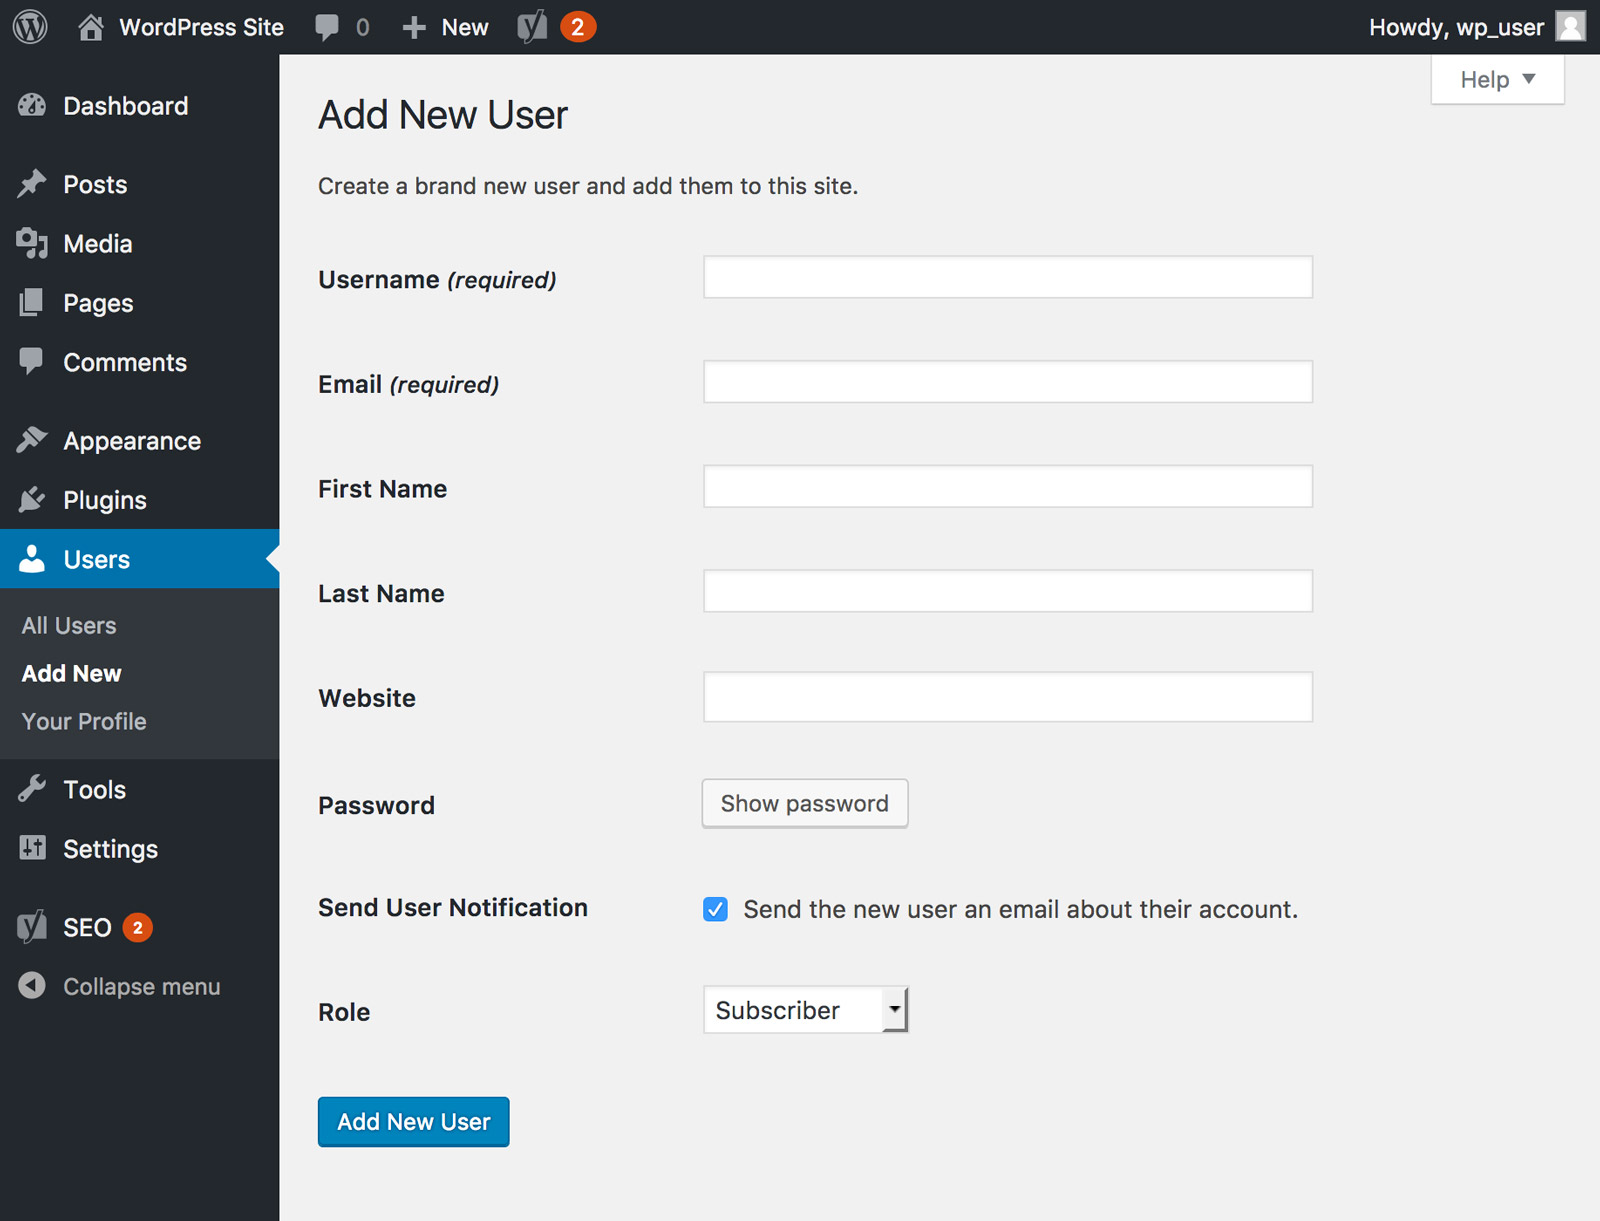 The Users area of the WordPress dashboard is displayed, showing the required fields to add a new user.